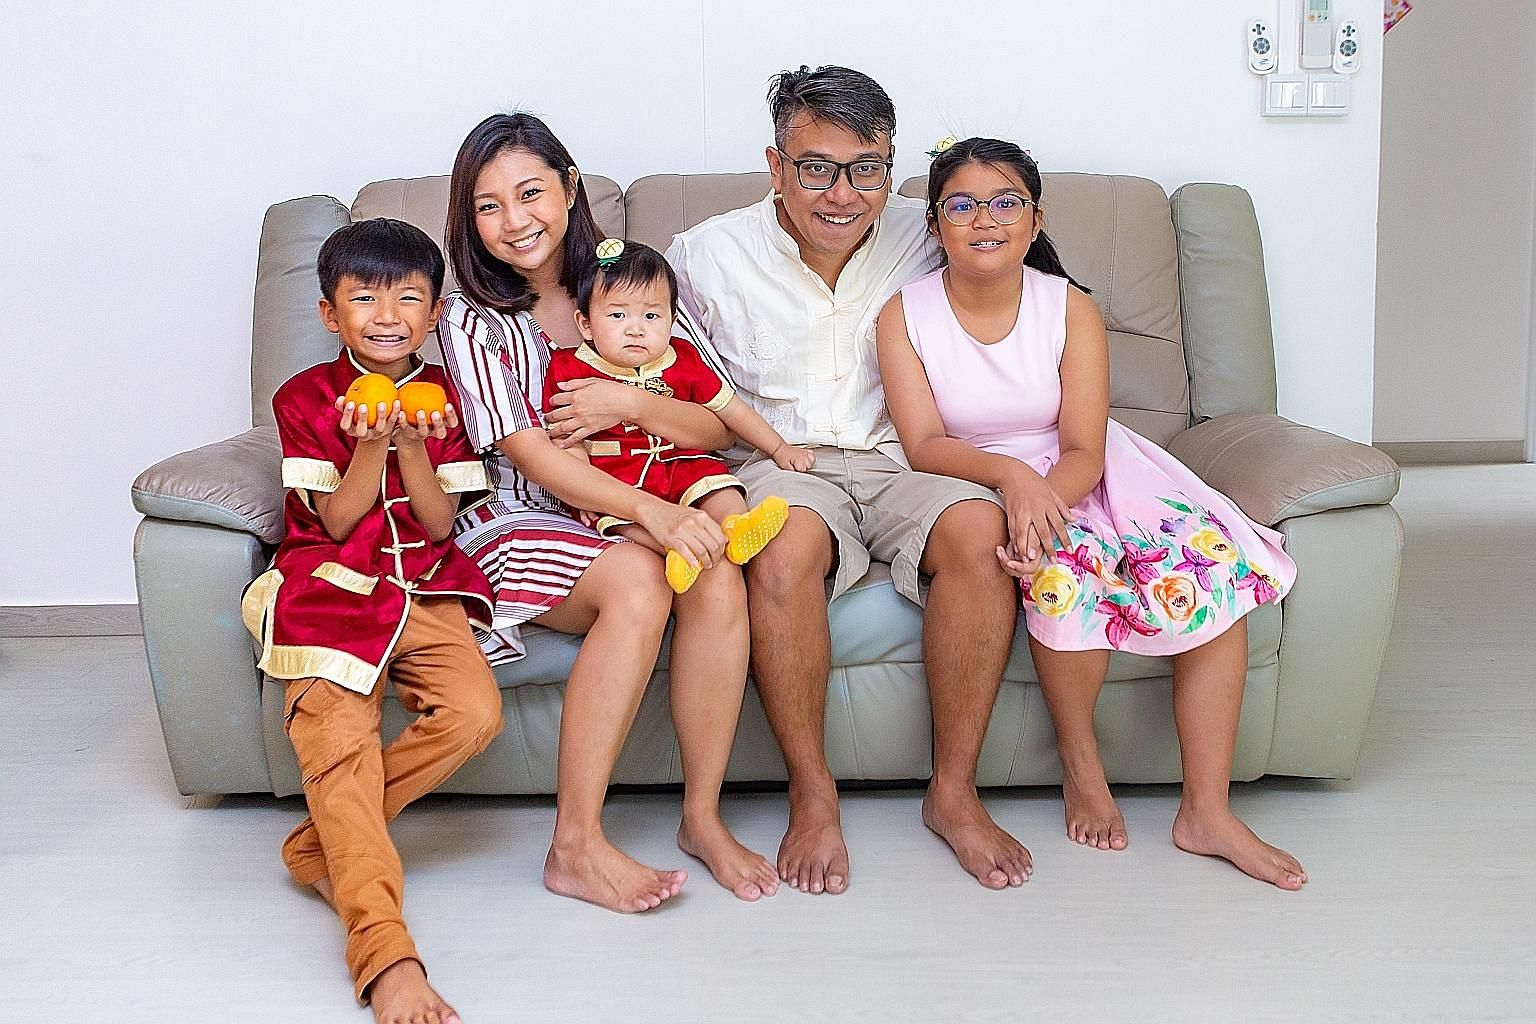 Ms Lim Zihui with her husband Royston Yap, 37, and their children - Nathan, eight; Nigel, eight months old; and Noelyn, 11 - in their Punggol executive apartment, which is near her parents' home.